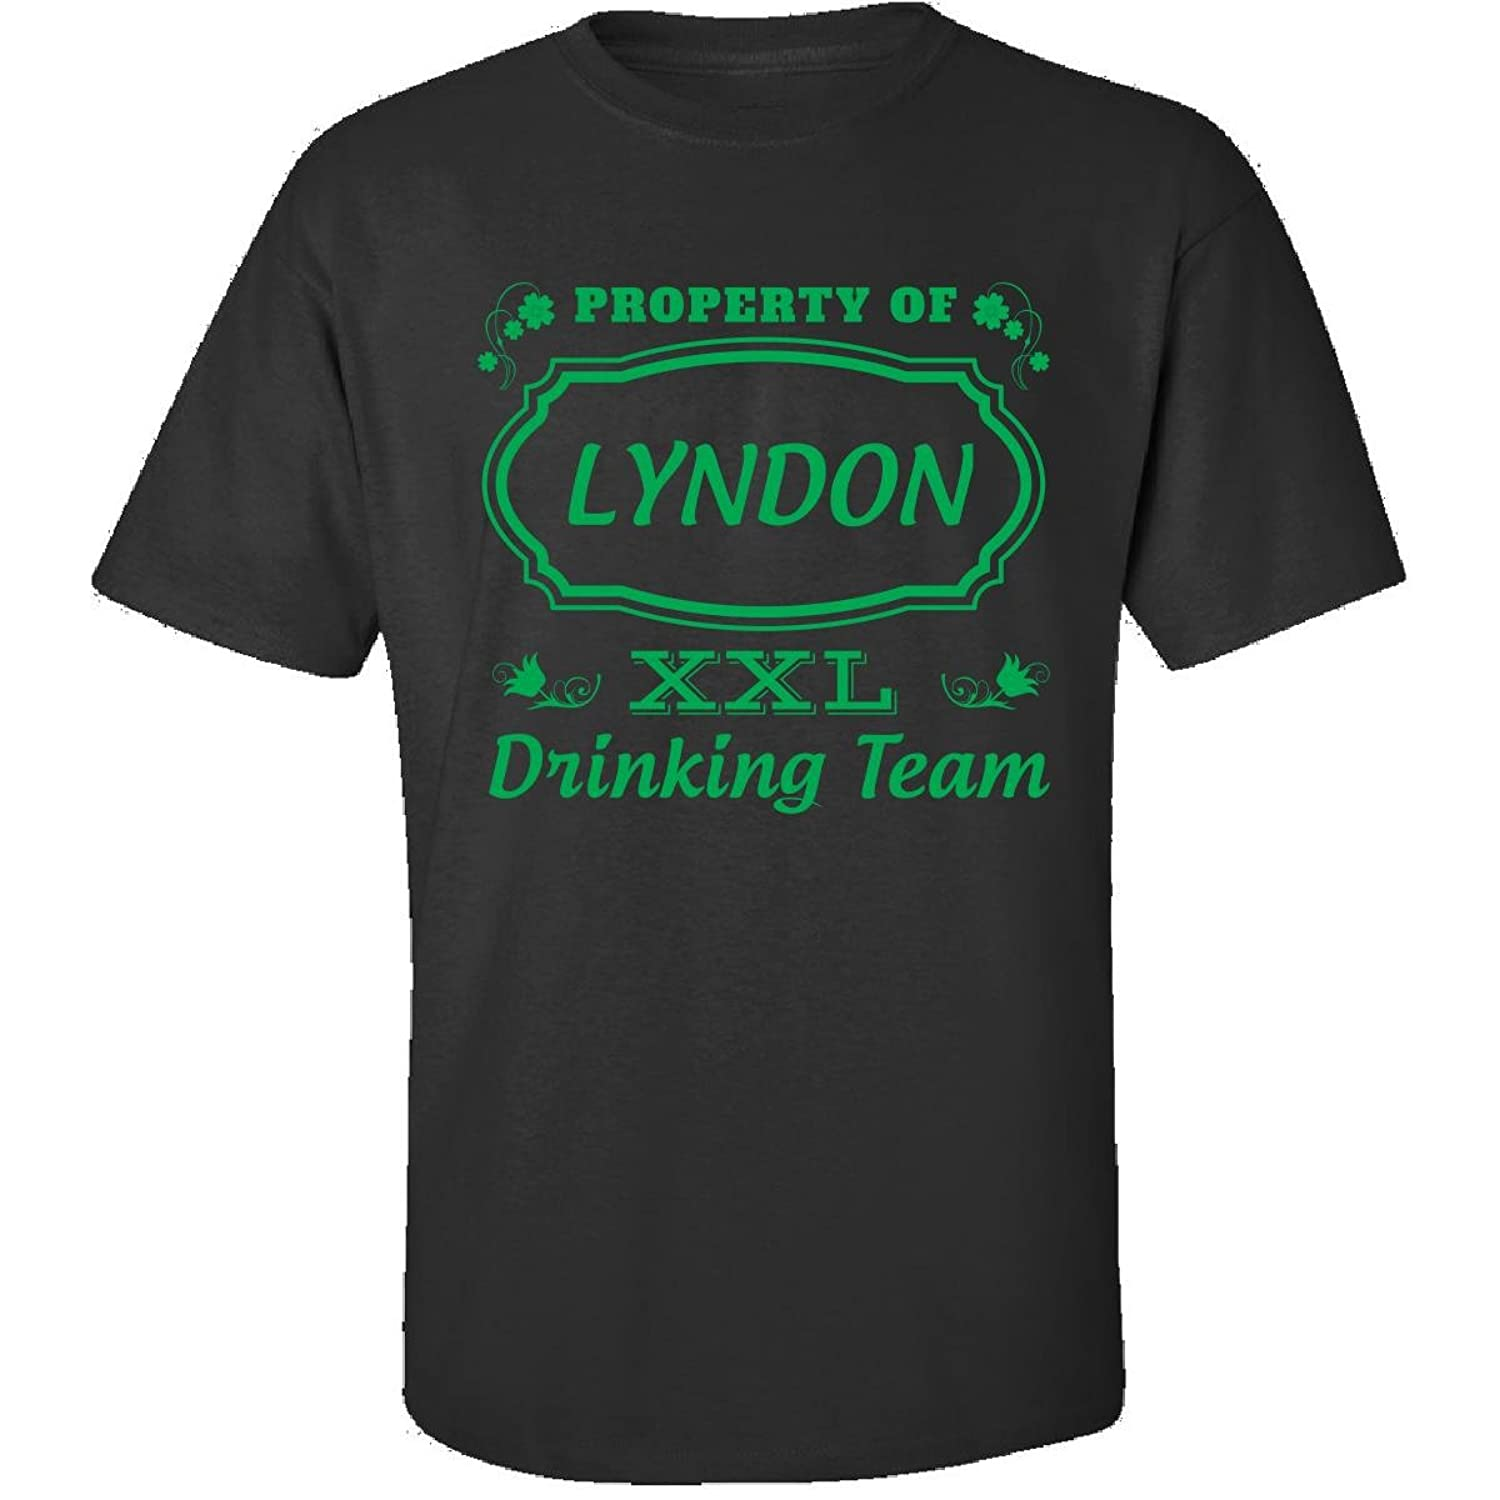 Property Of Lyndon St Patrick Day Beer Drinking Team - Adult Shirt